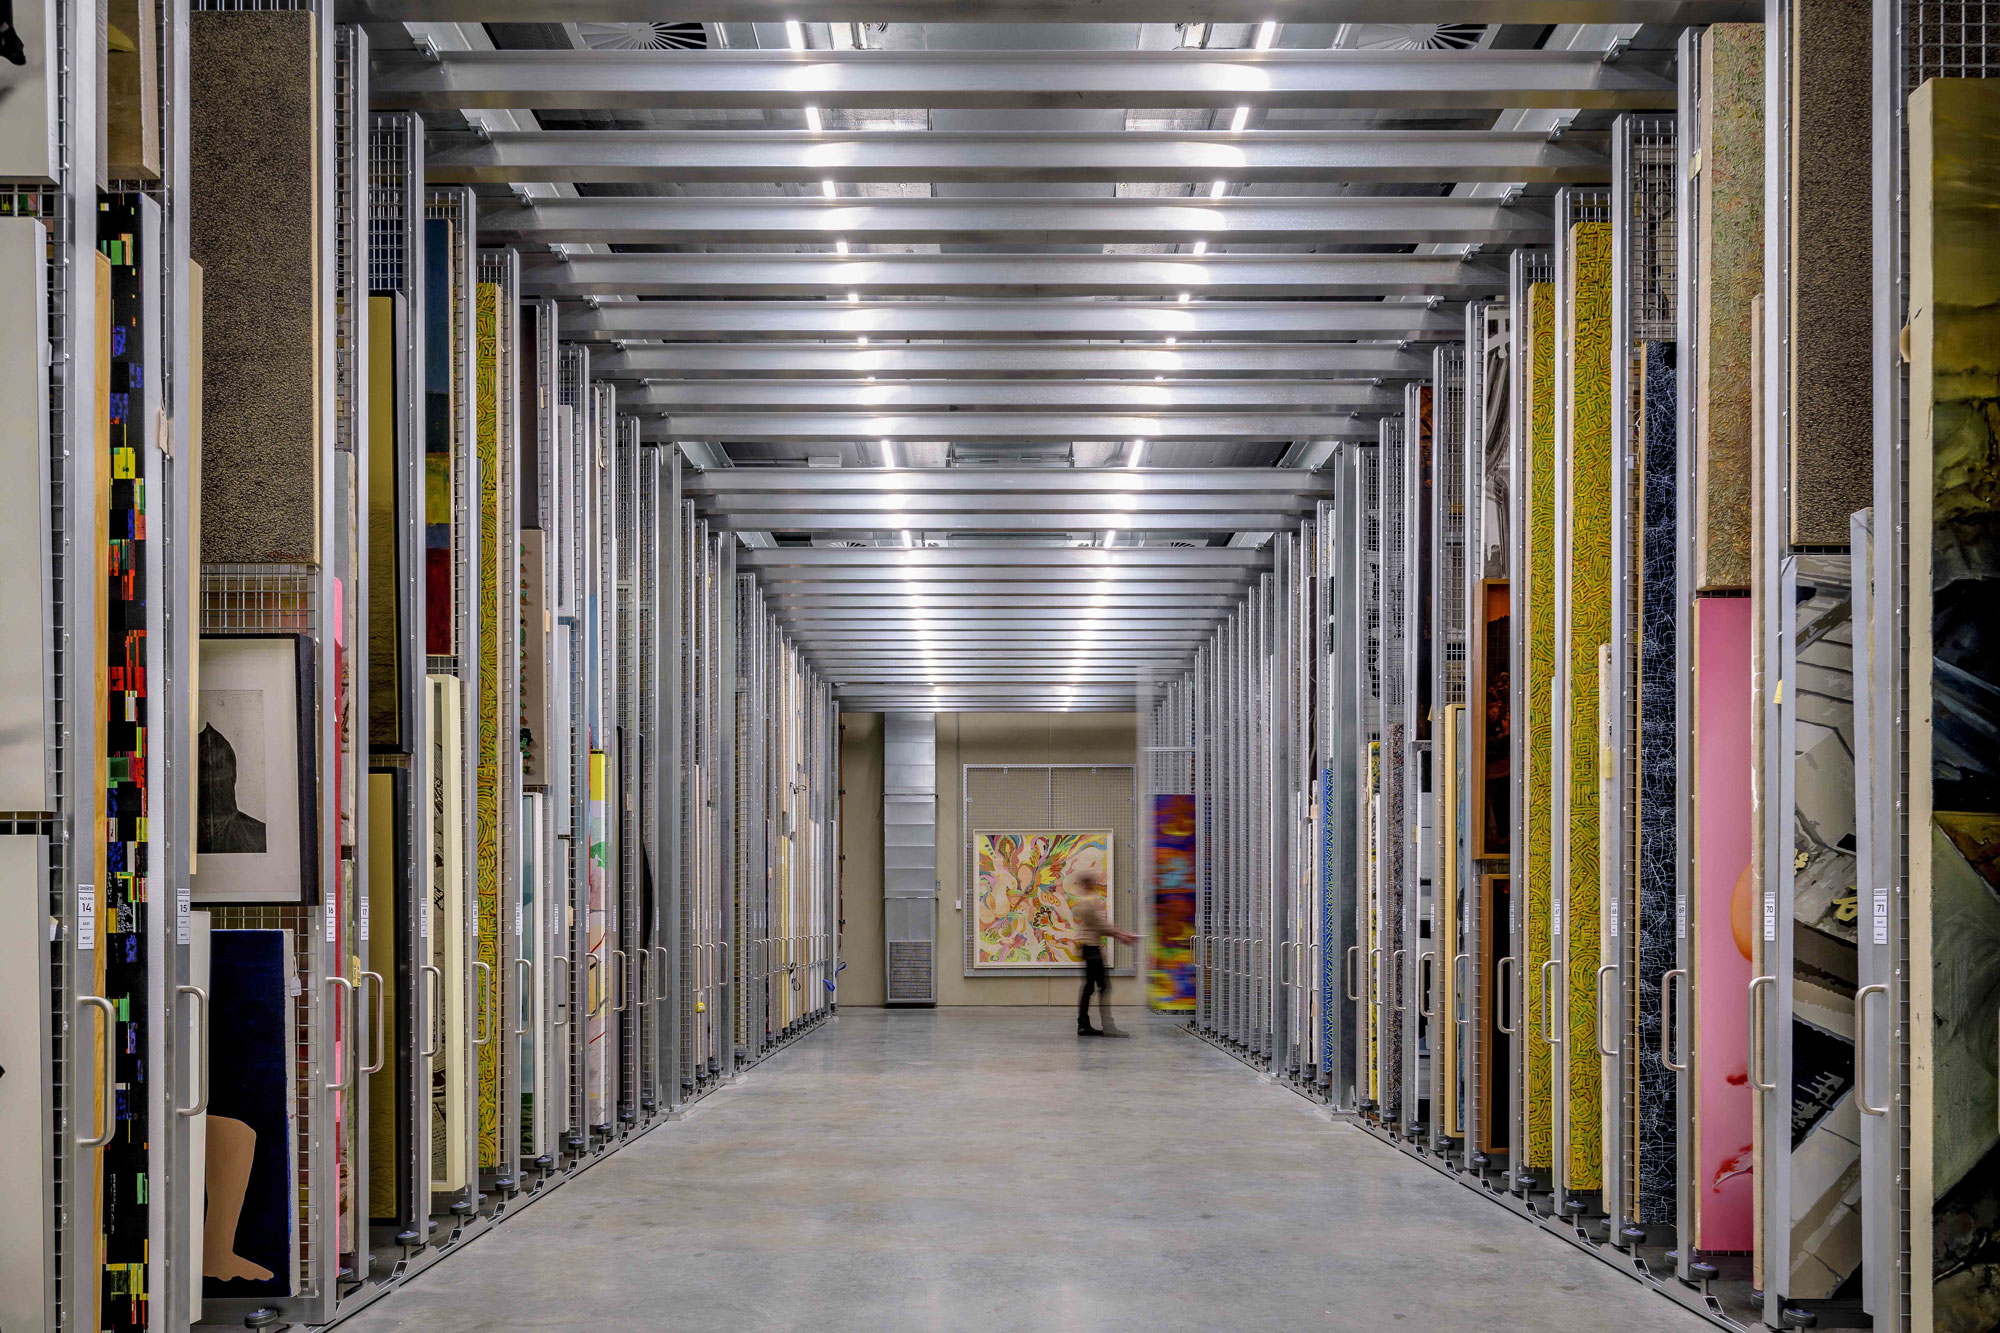 Dangrove Art Storage Facility Interior, Alexandria NSW Australia, designed by Tzannes, built by Infinity Constructions. Photography by The Guthrie Project.